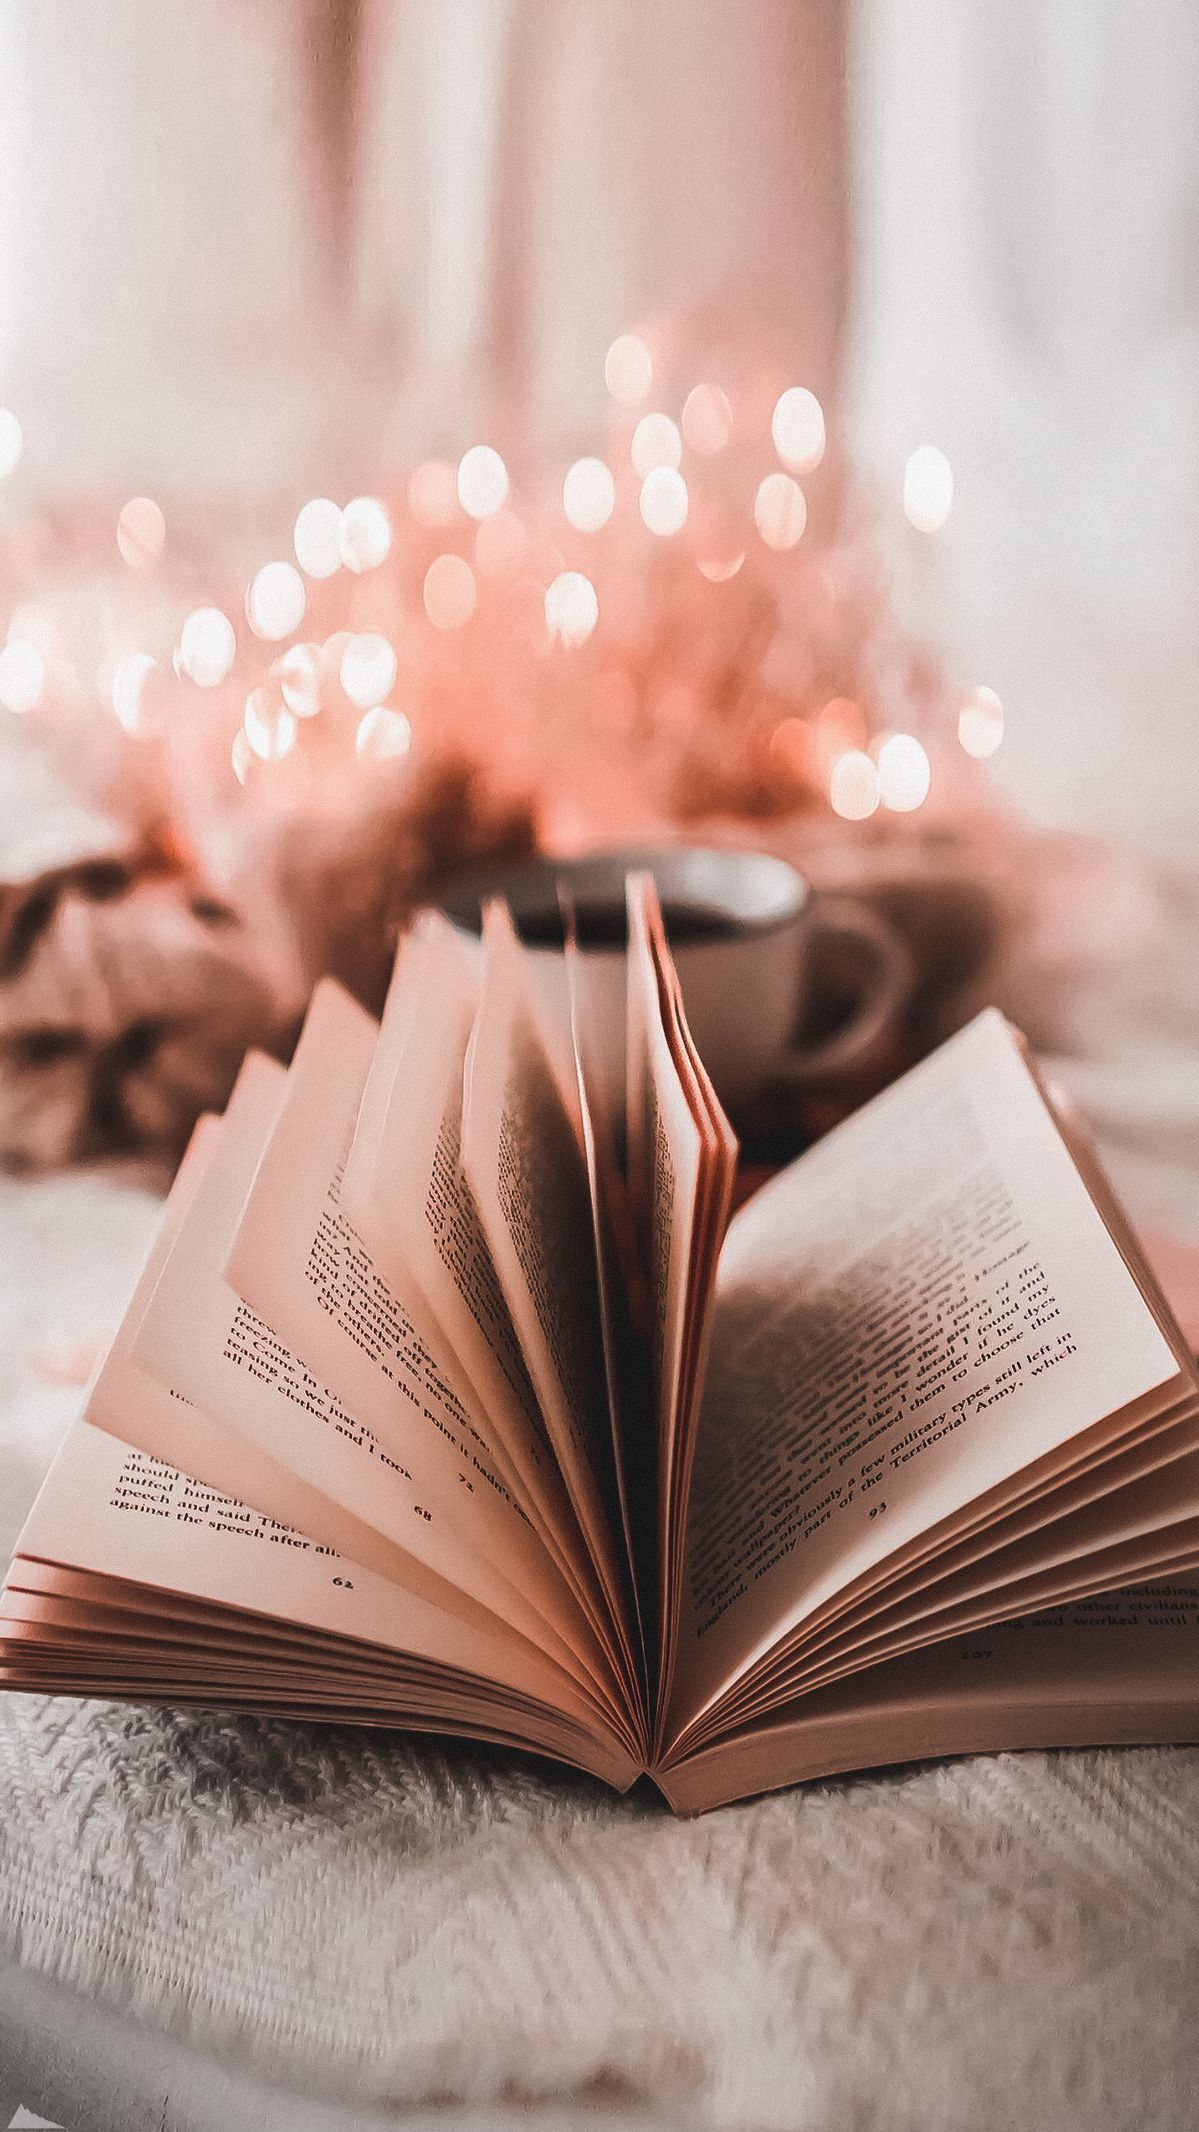 Book Lovers Book Wallpaper Pretty Wallpapers Aesthetic Iphone Wallpaper Anime book lover wallpaper